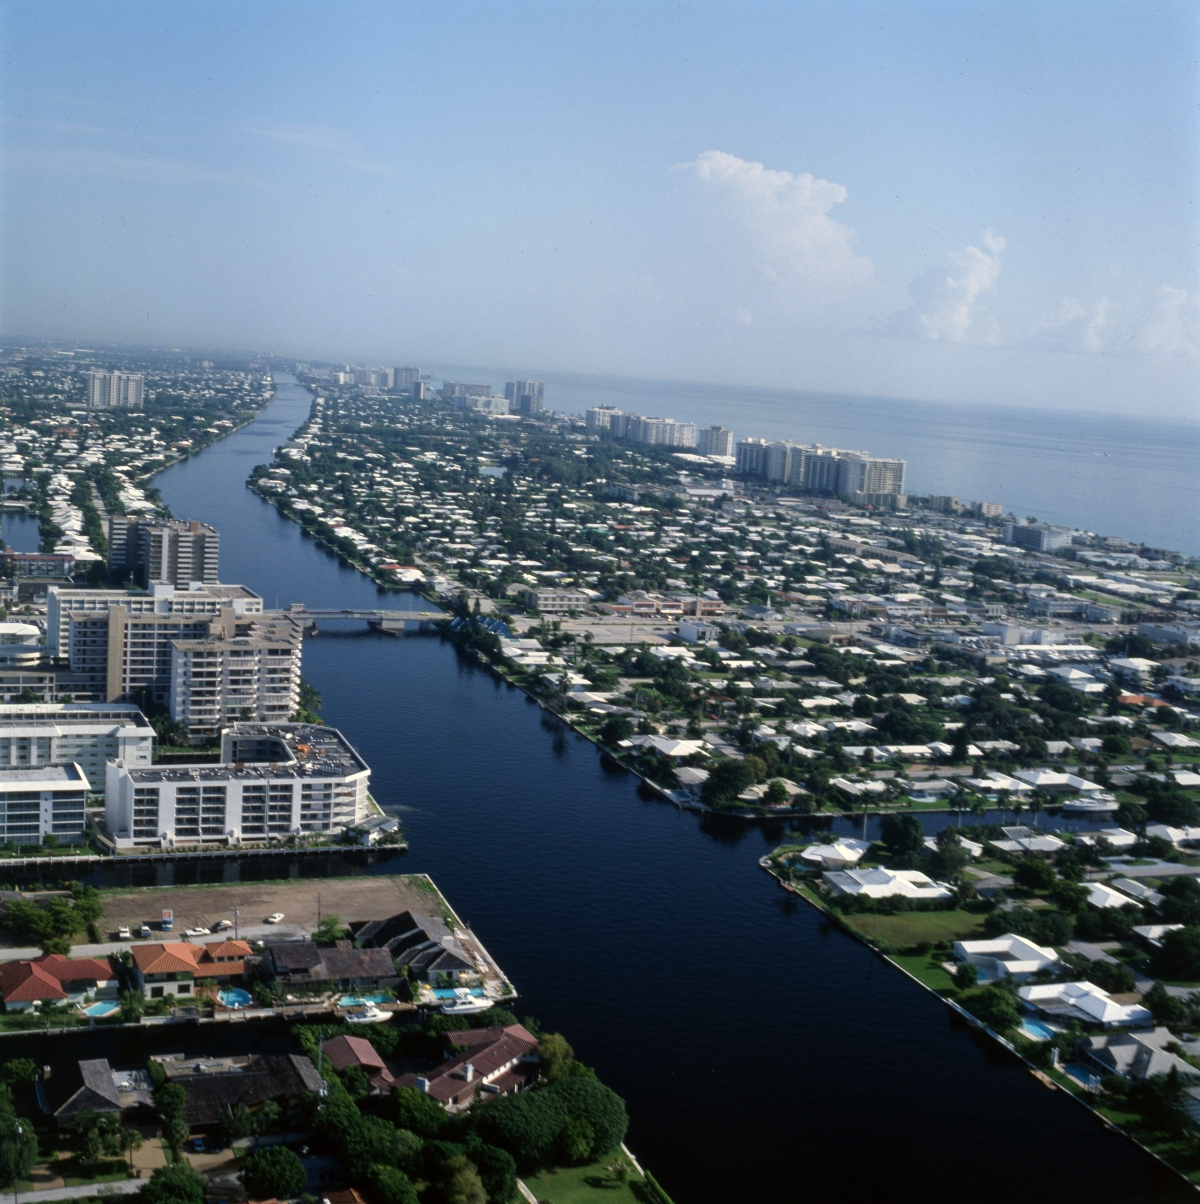 Aerial view looking north over Lauderdale-by-the-Sea.